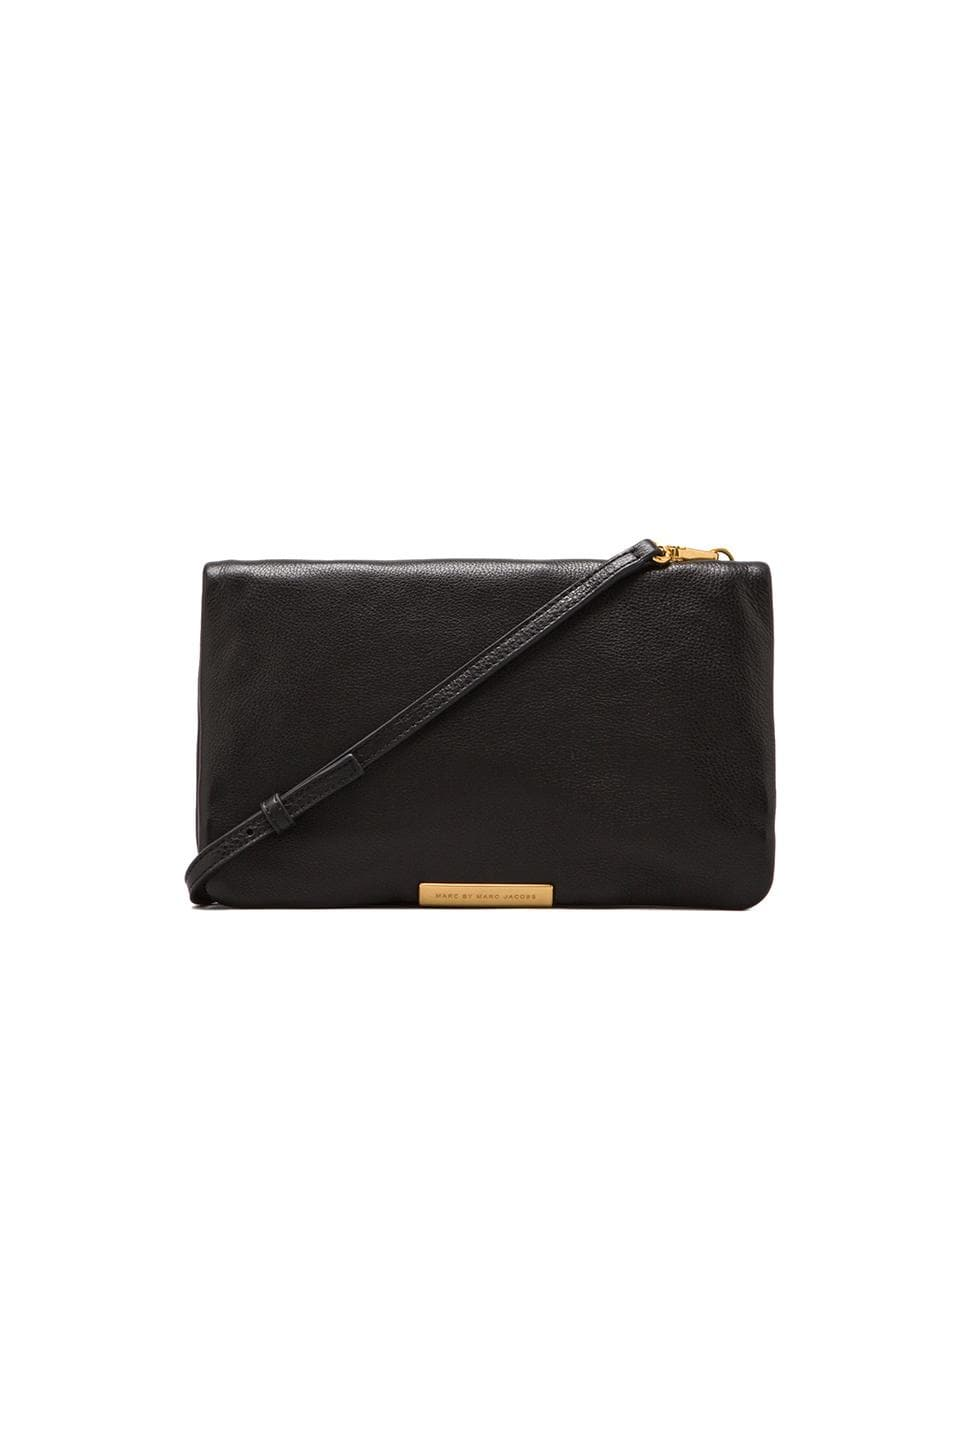 Marc by Marc Jacobs Raveheart Clutch in Black